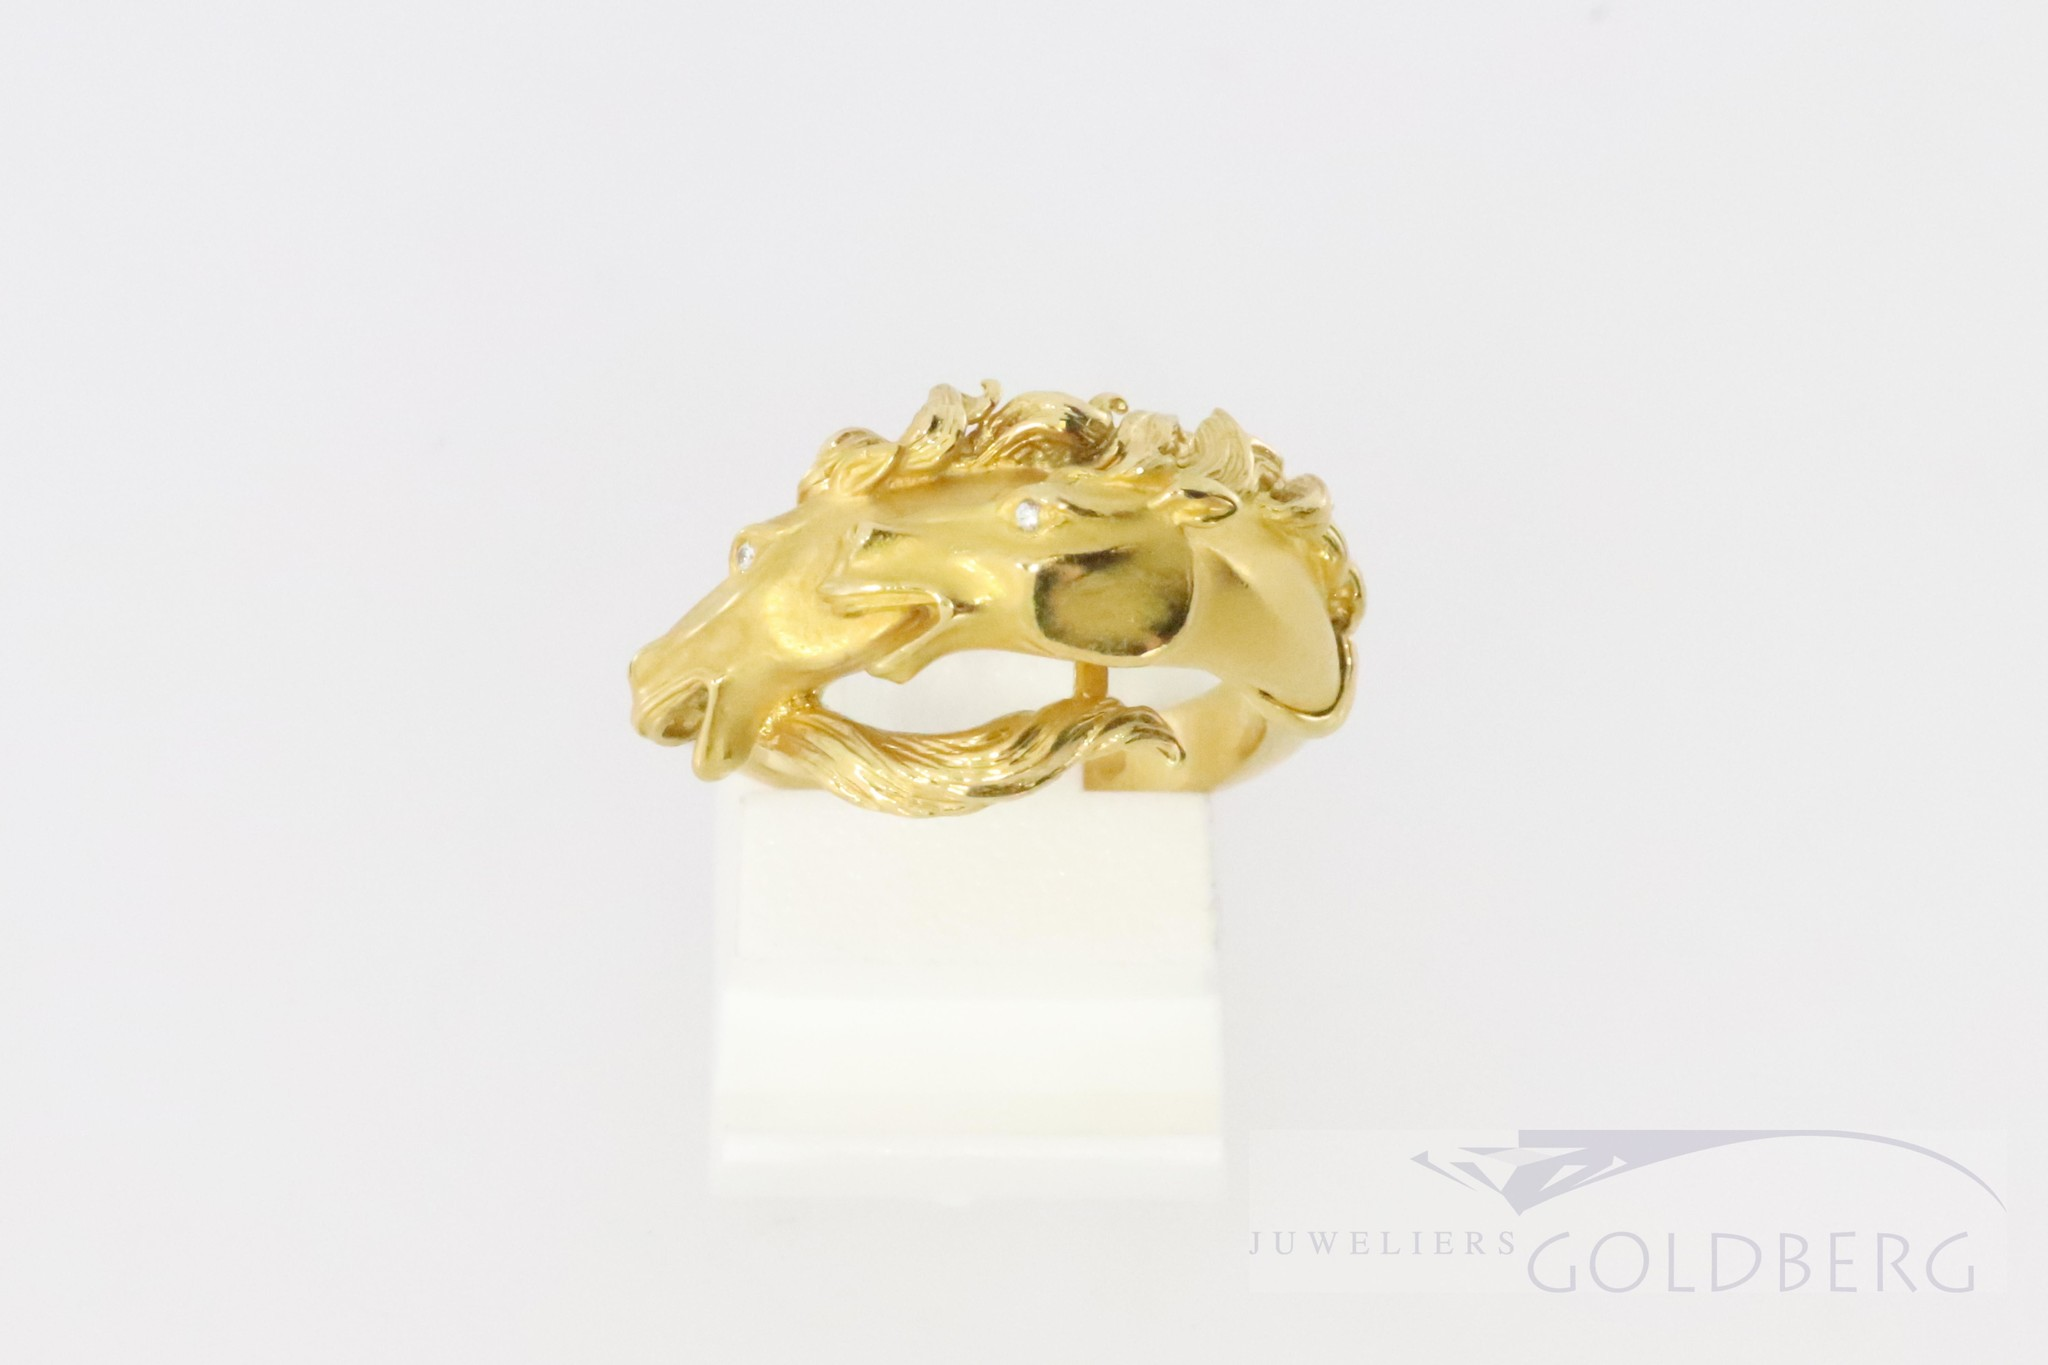 18k gold horsering with diamonds